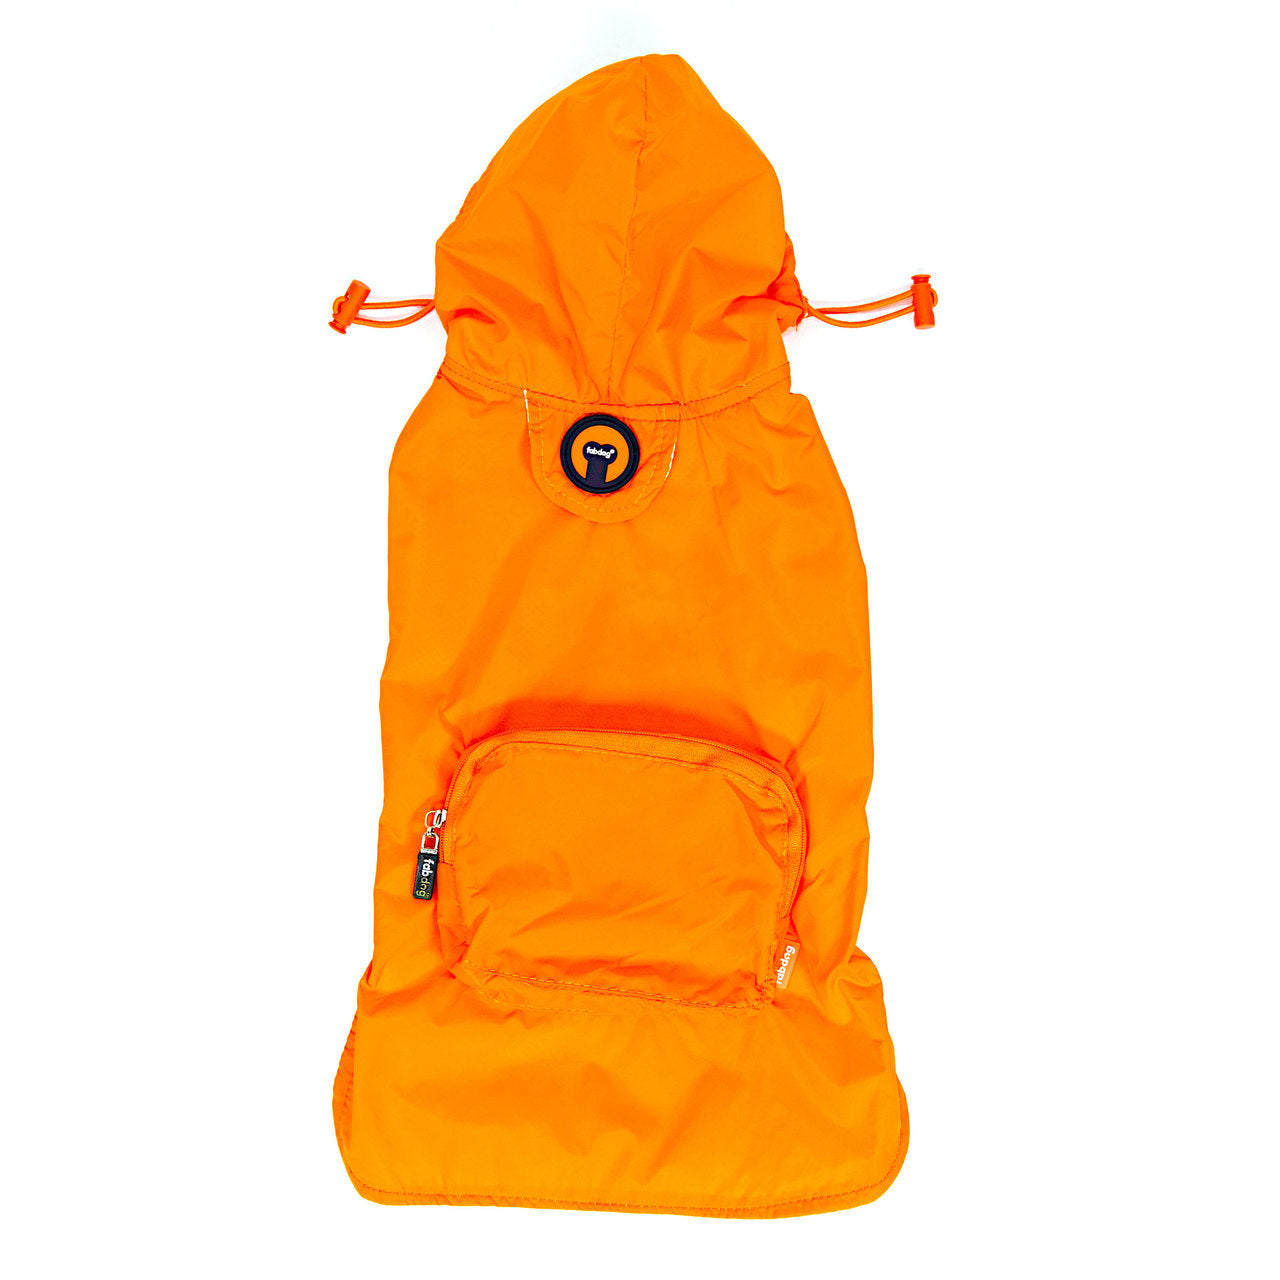 Orange Packaway Raincoat